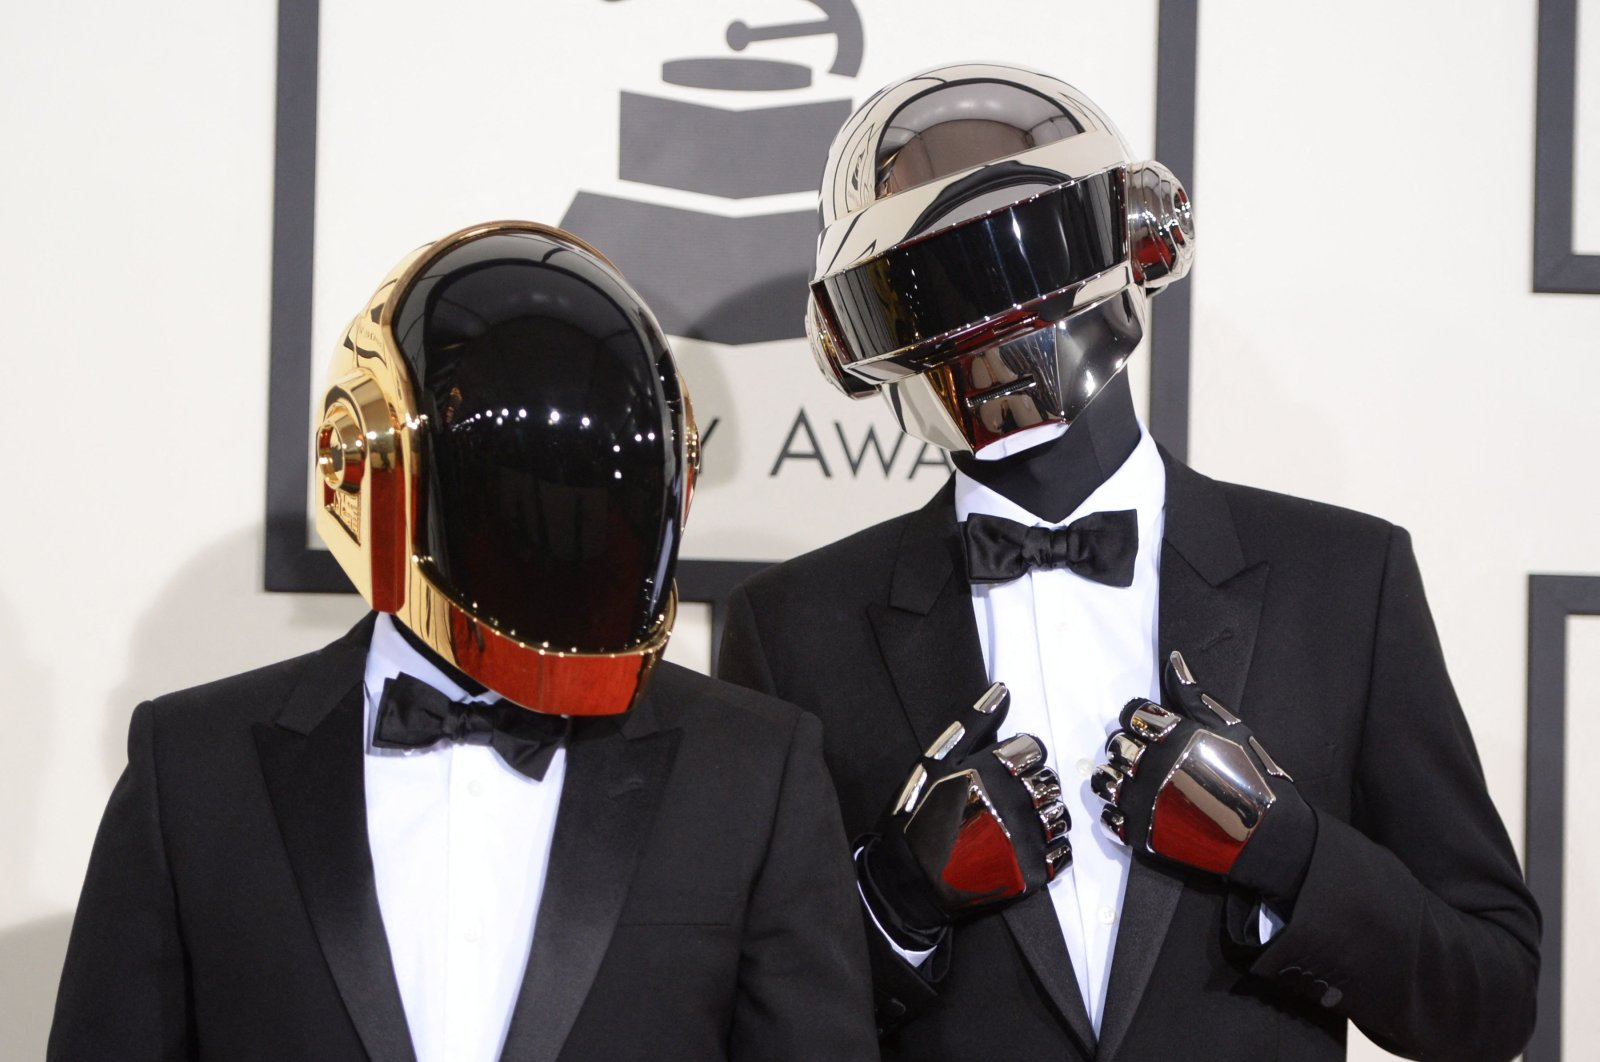 Daft Punk arrive on the red carpet for the 56th Grammy Awards at the Staples Center in Los Angeles, California, on Jan. 26, 2014. (AFP)